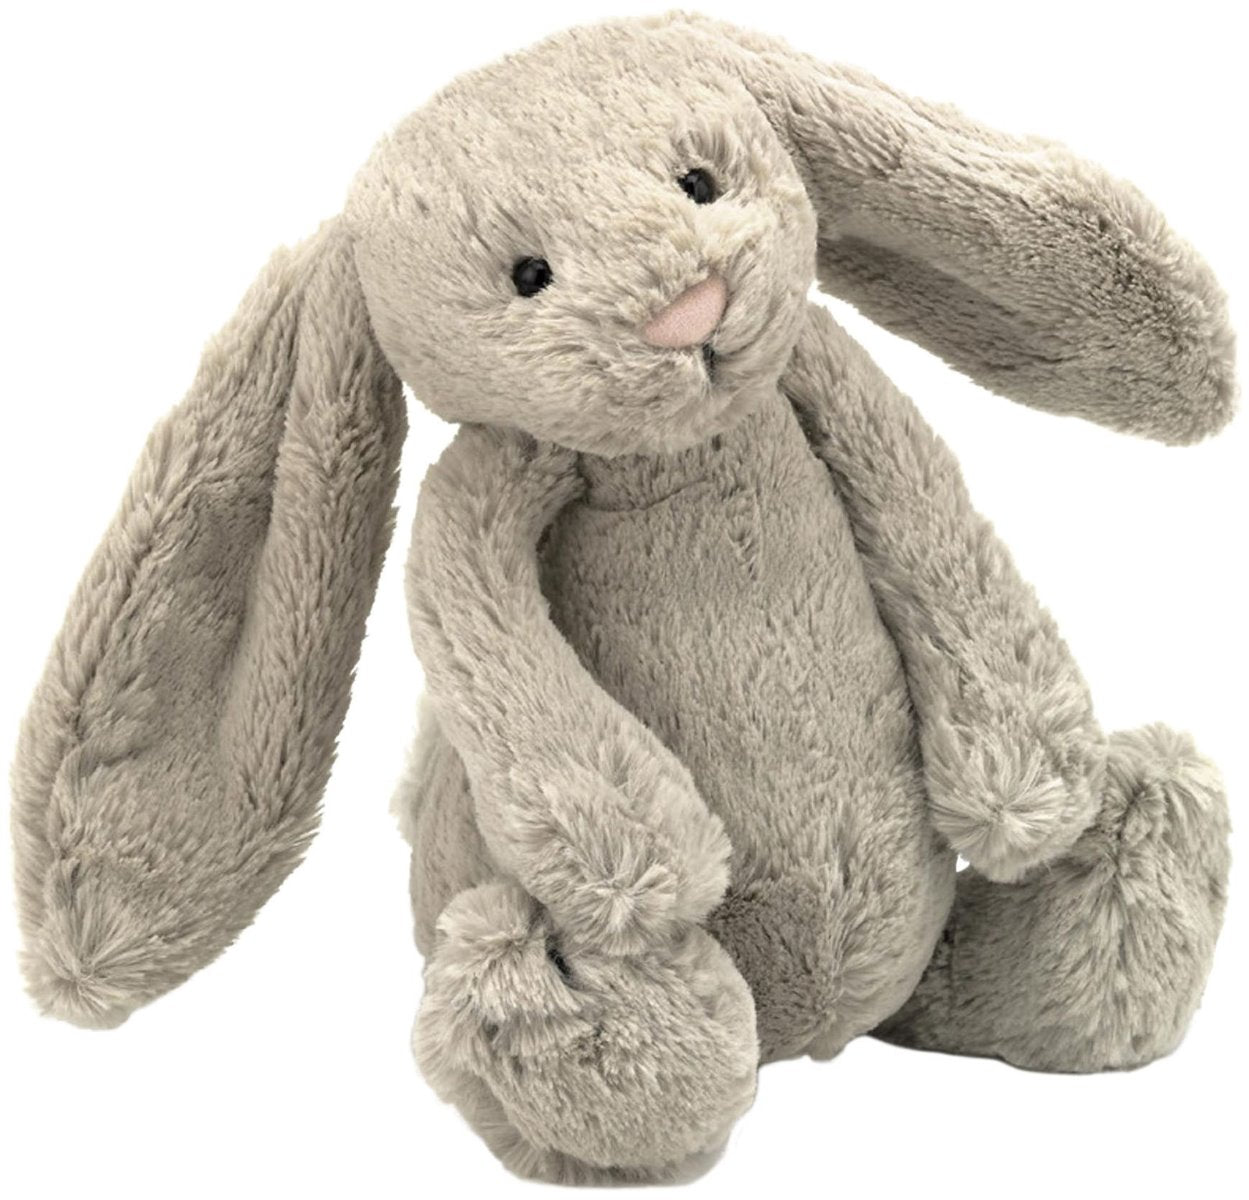 Jellycat - Bashful Biege Bunny Medium